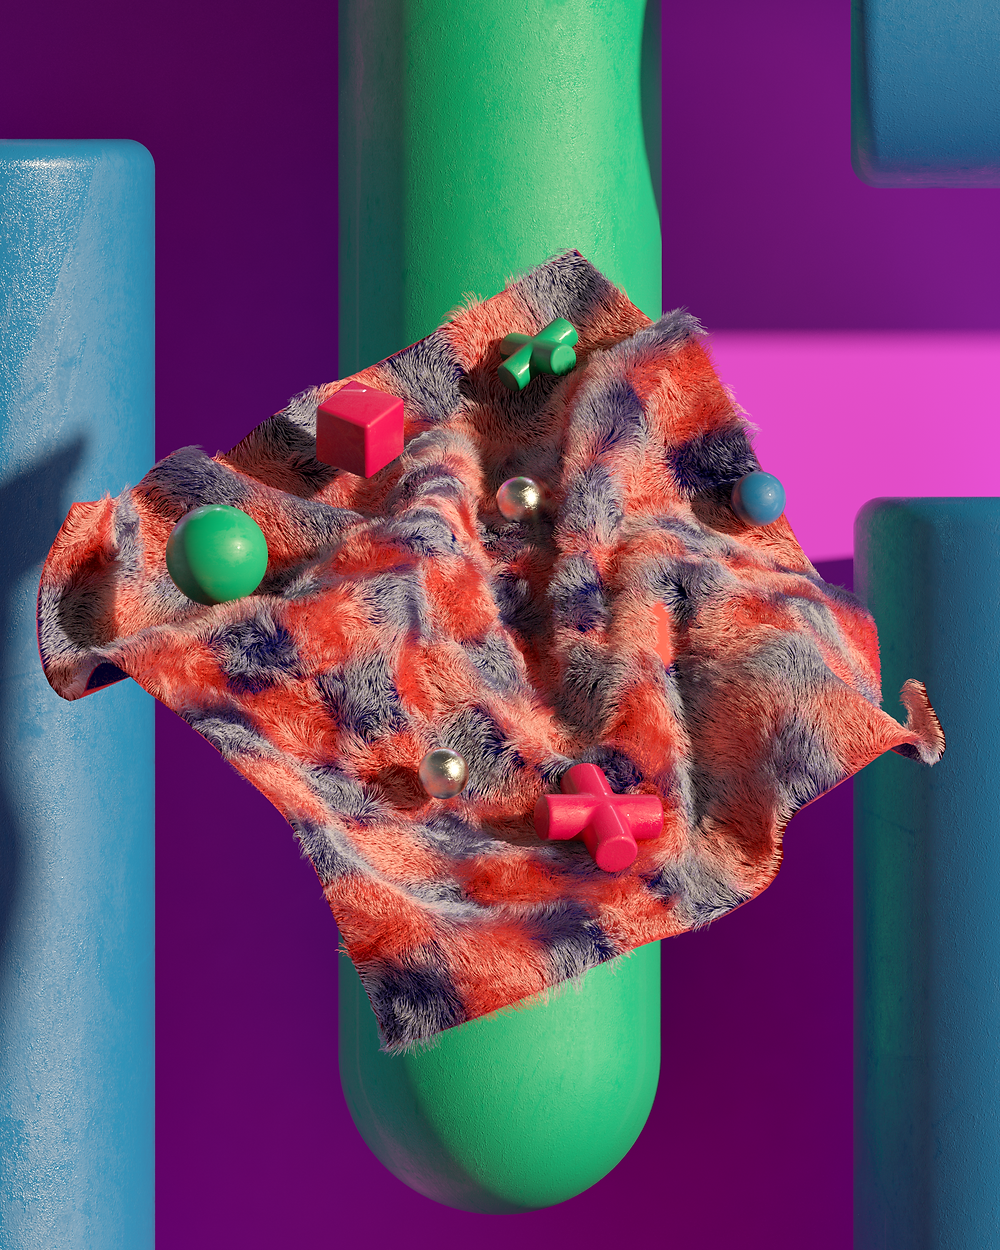 03_Cloth_Hair_01: After spending some time using 3D software to create my art, I have always been trying to recreate real-world materials within my work. I managed to make my own hair/fur textures with this piece. The idea was to show the balance between real-life materials alongside my toy-like world.